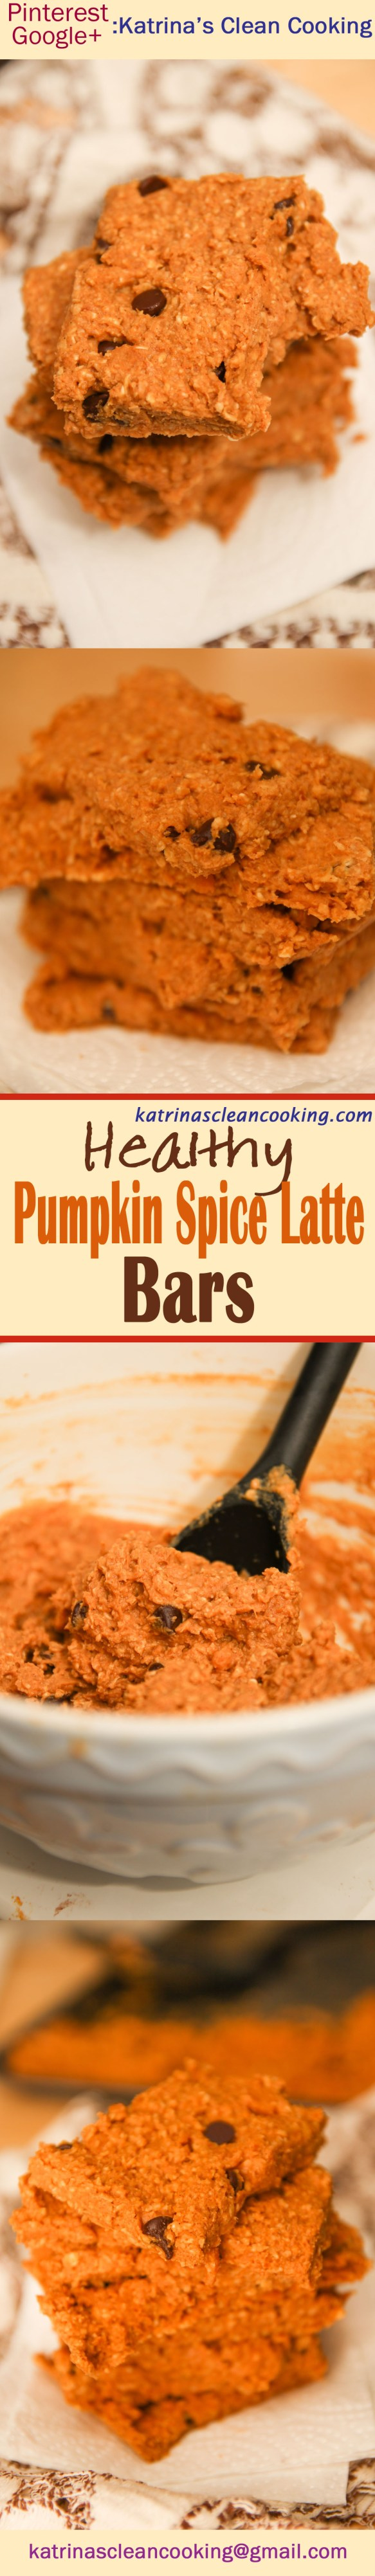 Healthy Pumpkin Spice Latte Energy Bars #healthy #glutenfree #vegan